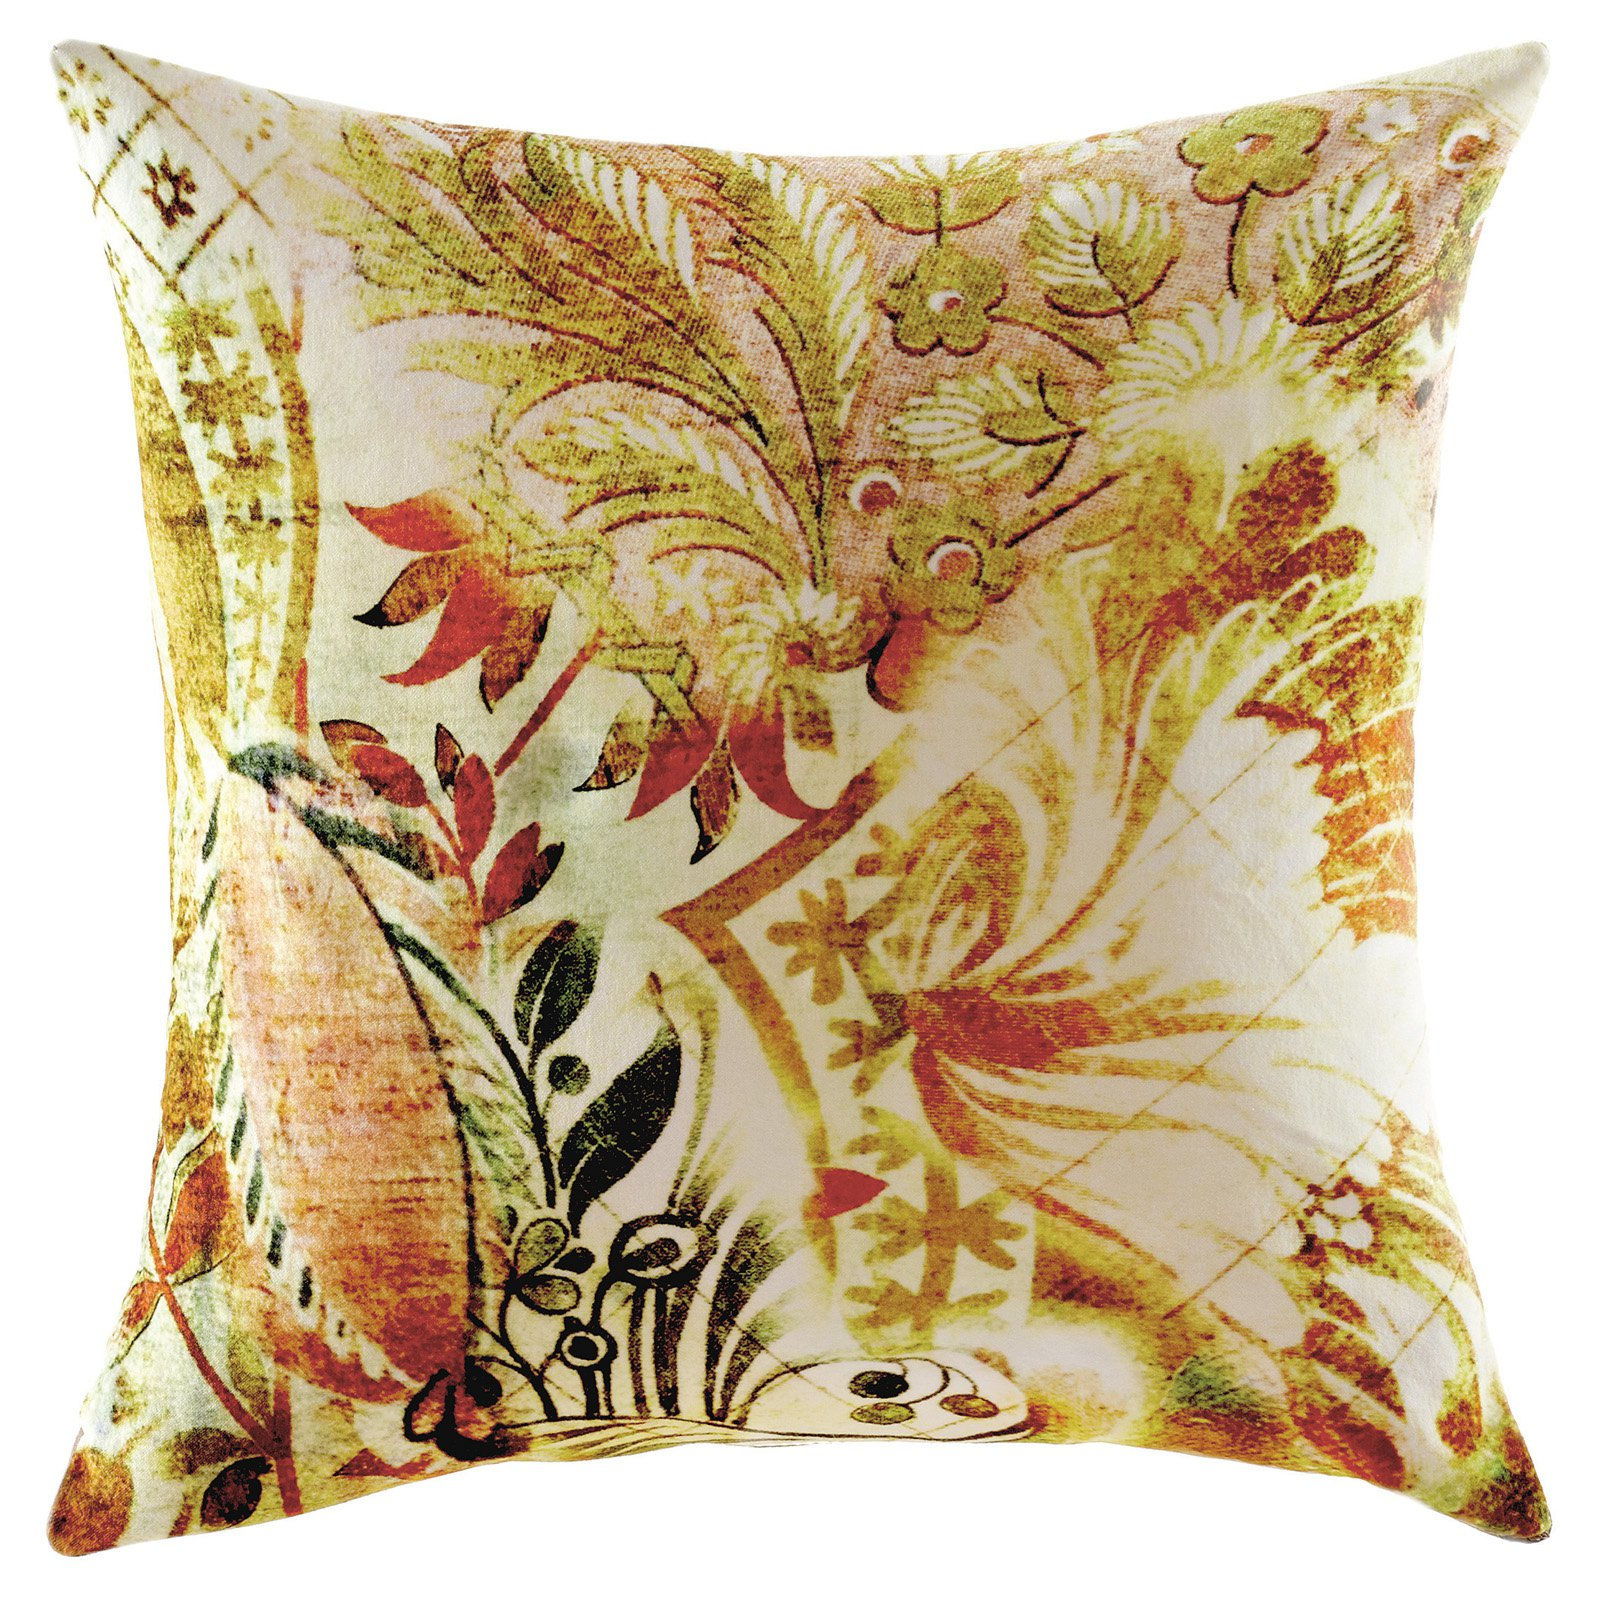 Poetic Wanderlust By Tracy Porter Michaila Floral Print Decorative Throw Pillow